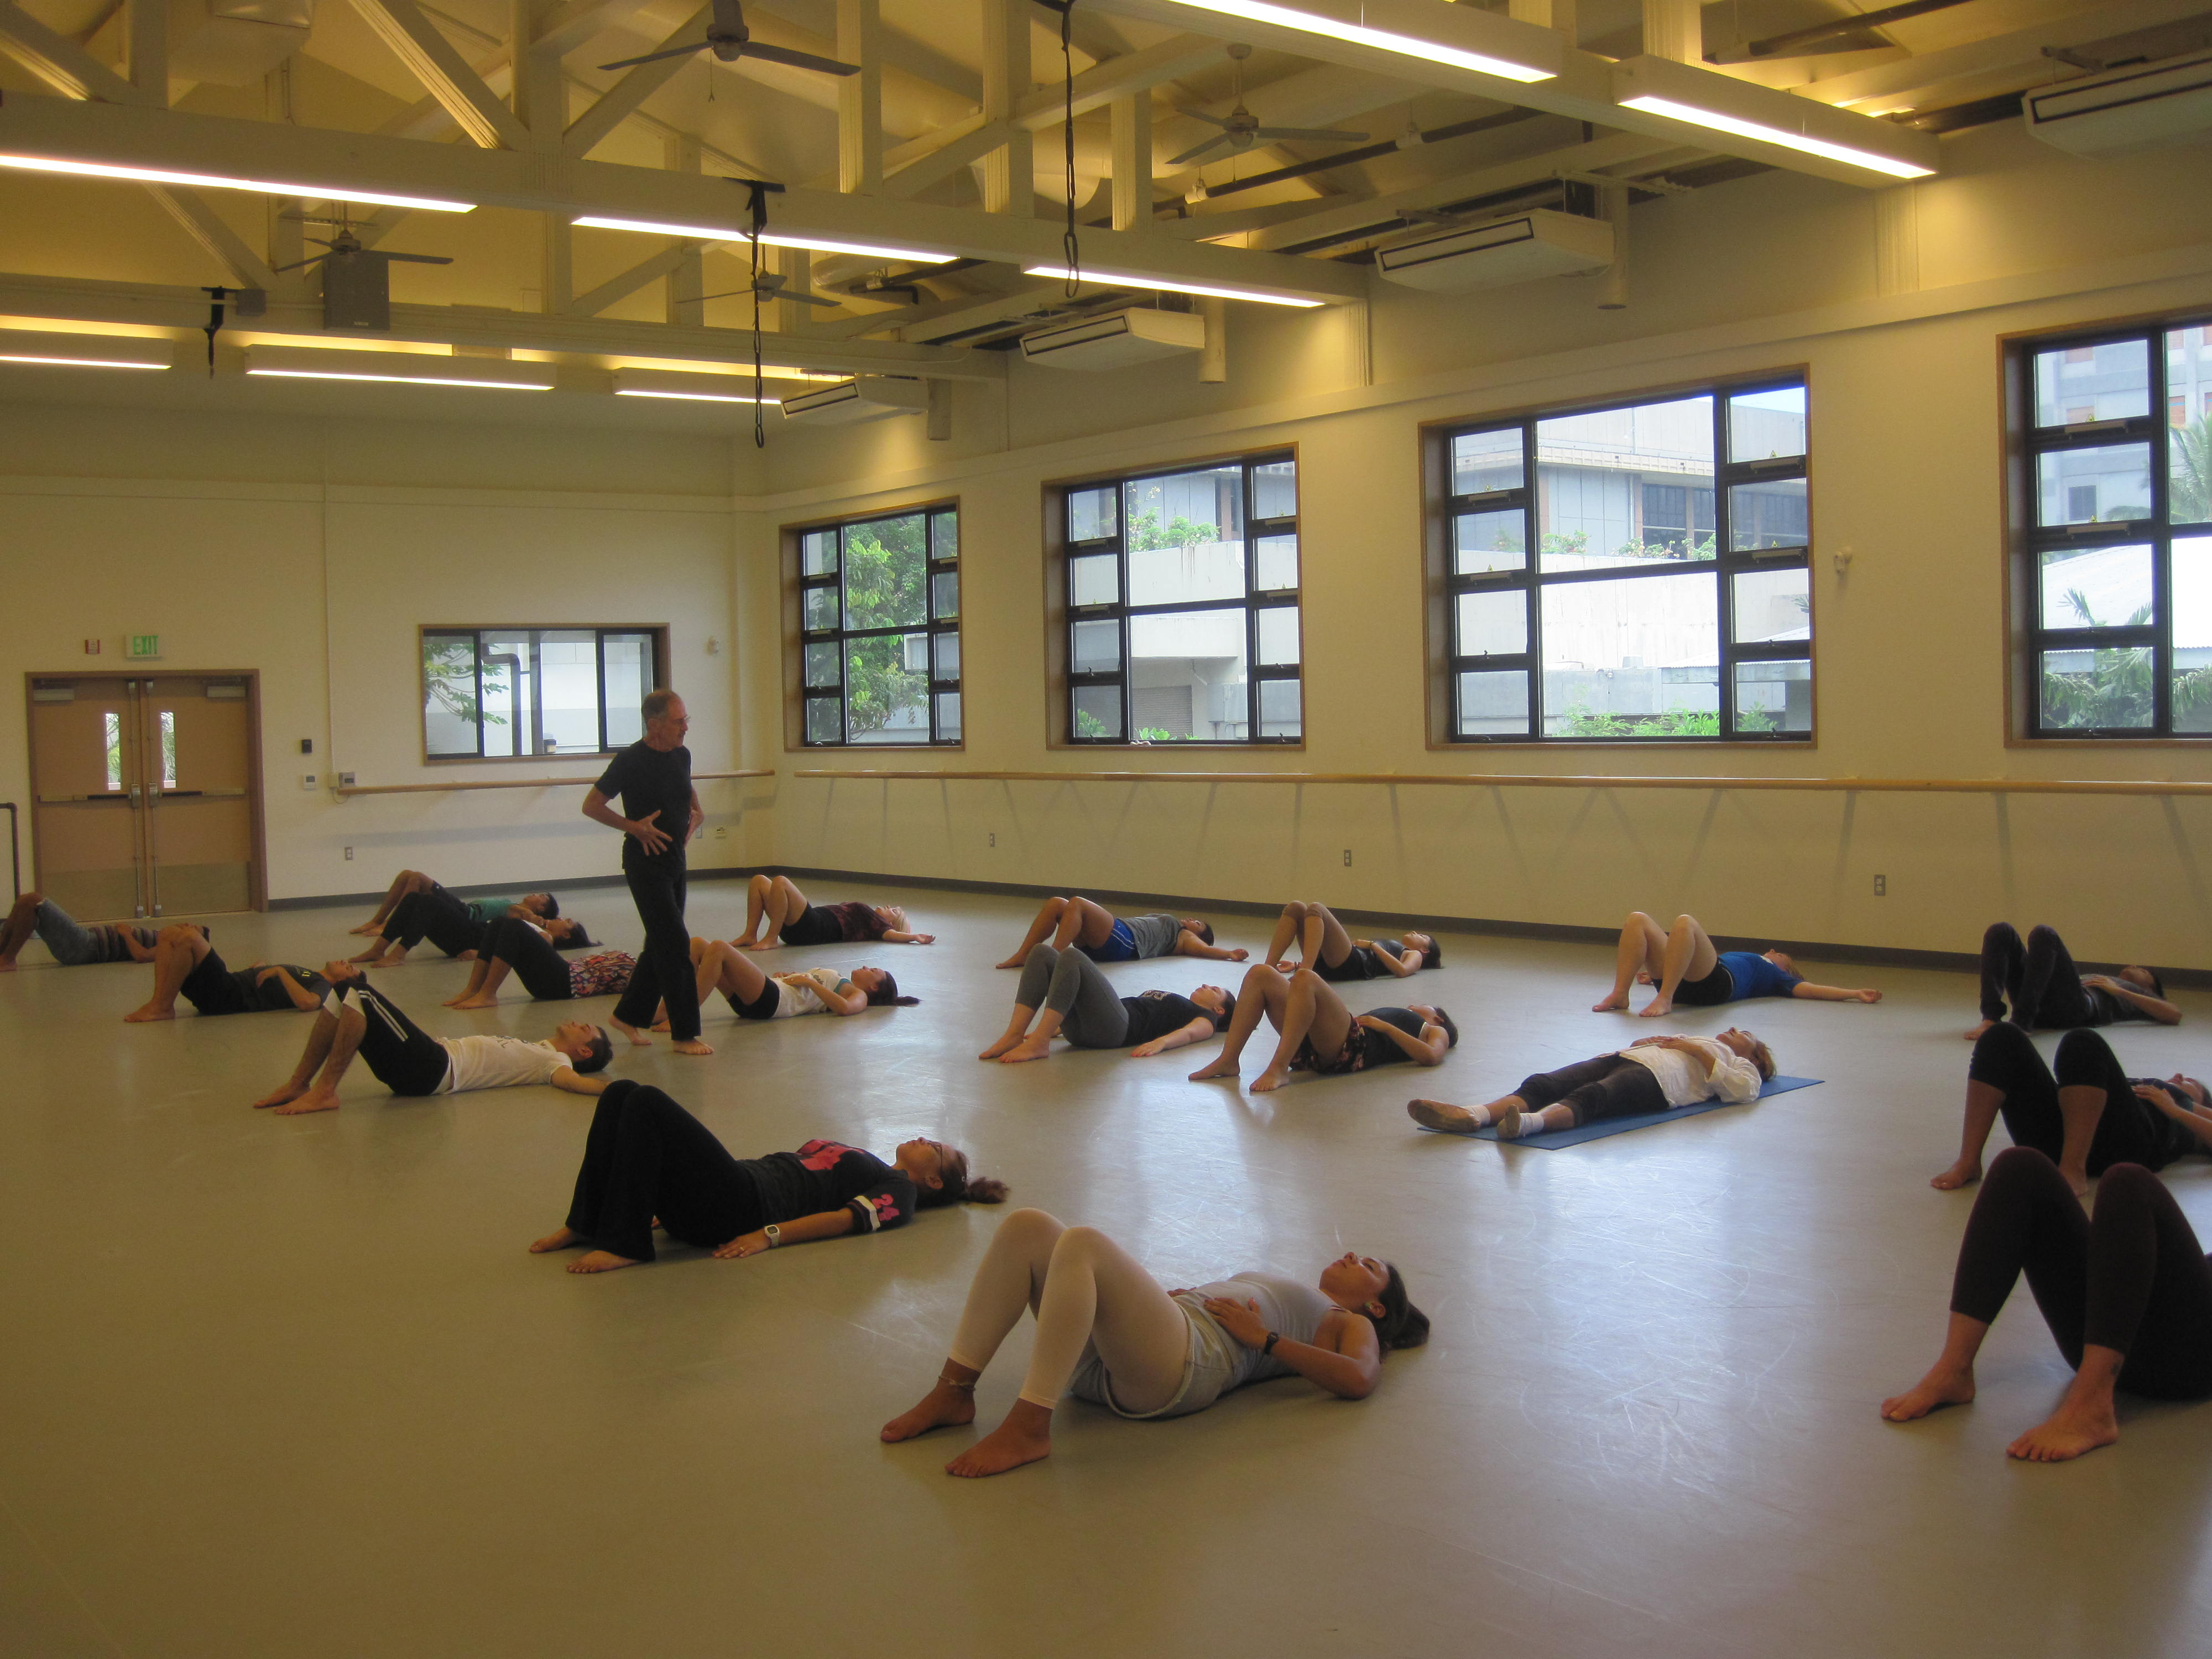 Students in dance classroom lying on floor with instructor walking around